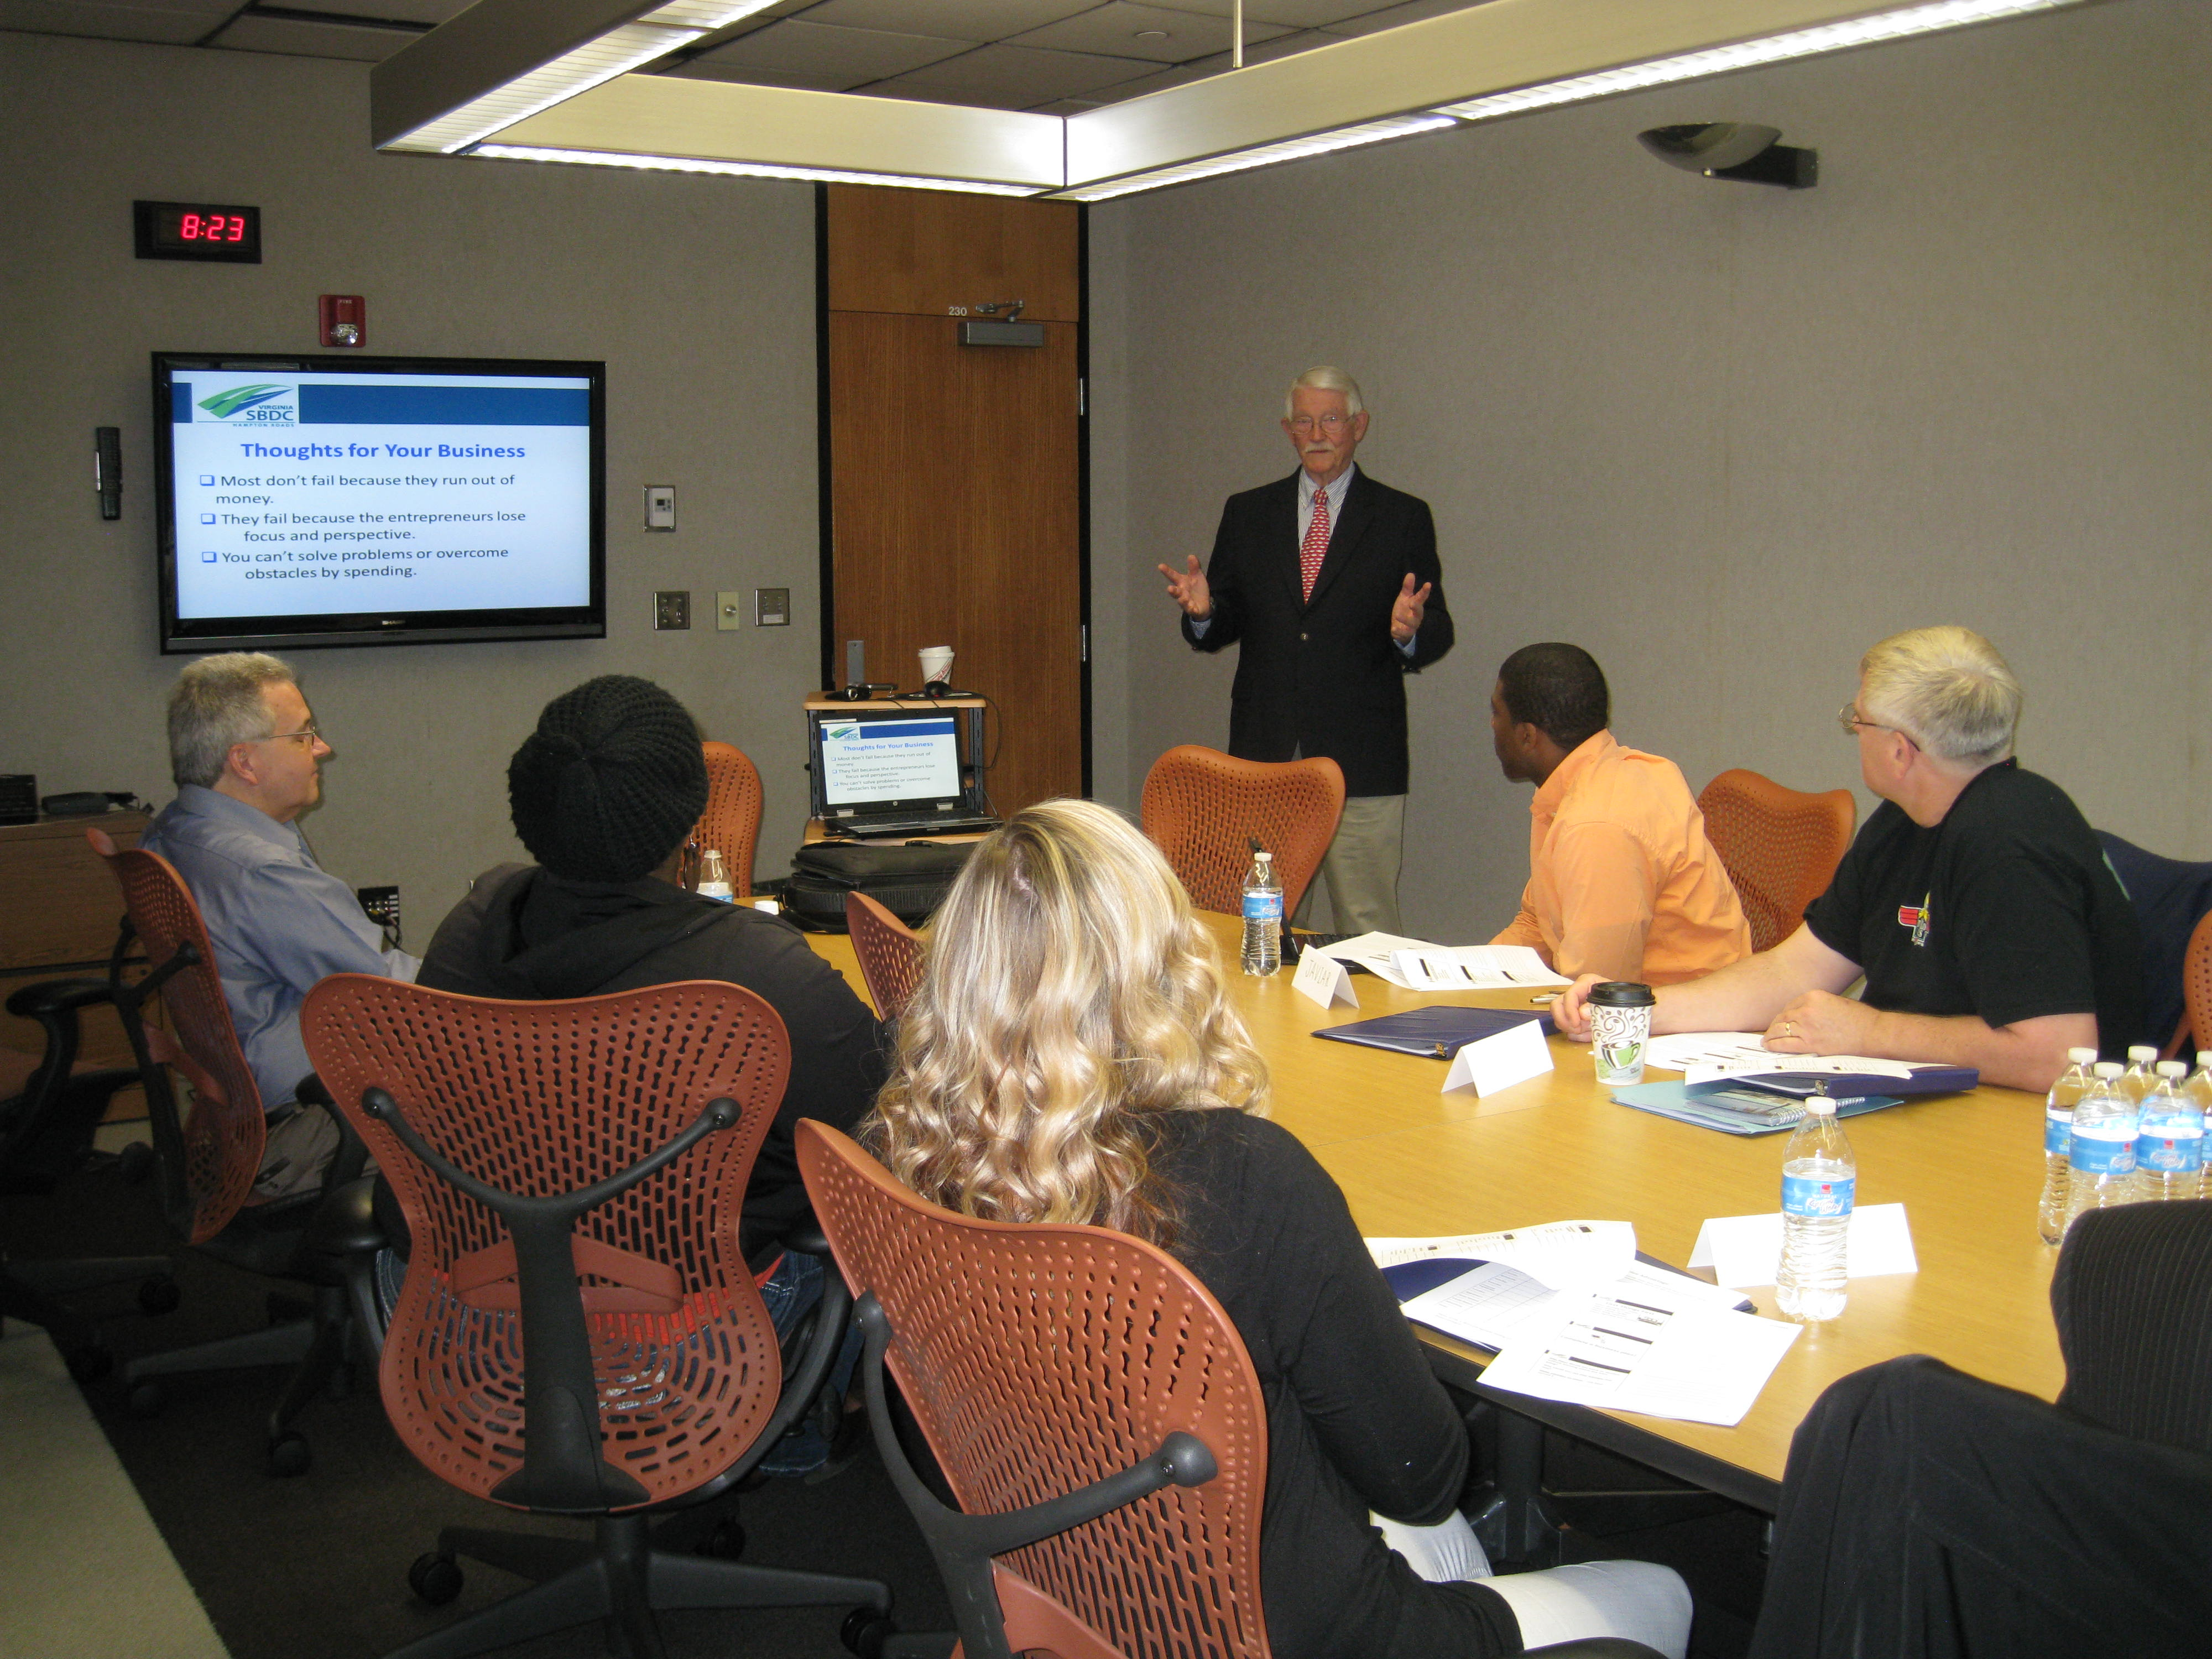 The Small Business Development Center of Hampton Roads (SBDC) Kicked Off the Spring Session of the Hampton Roads Retail Academy on April 9